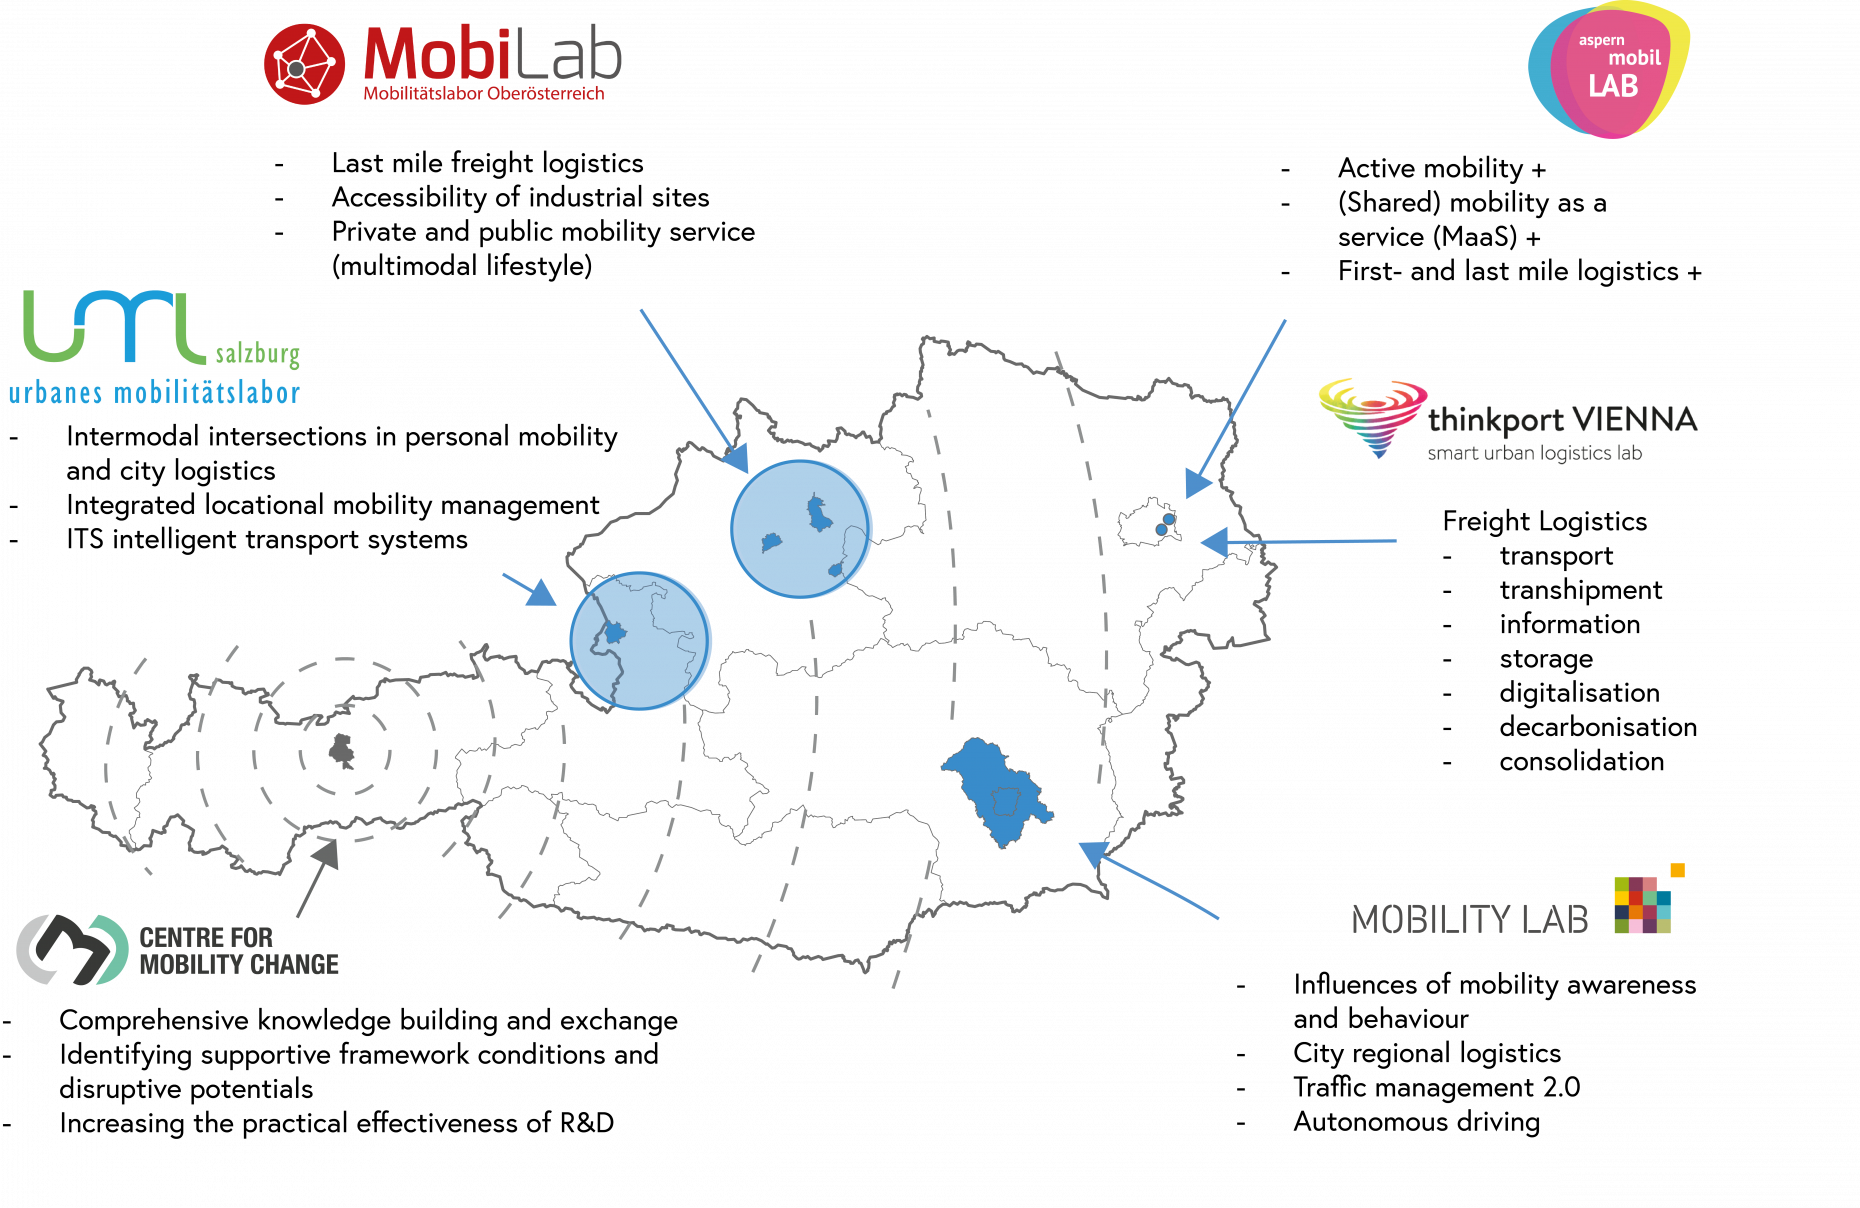 Overview of the Mobility Labs in Austria